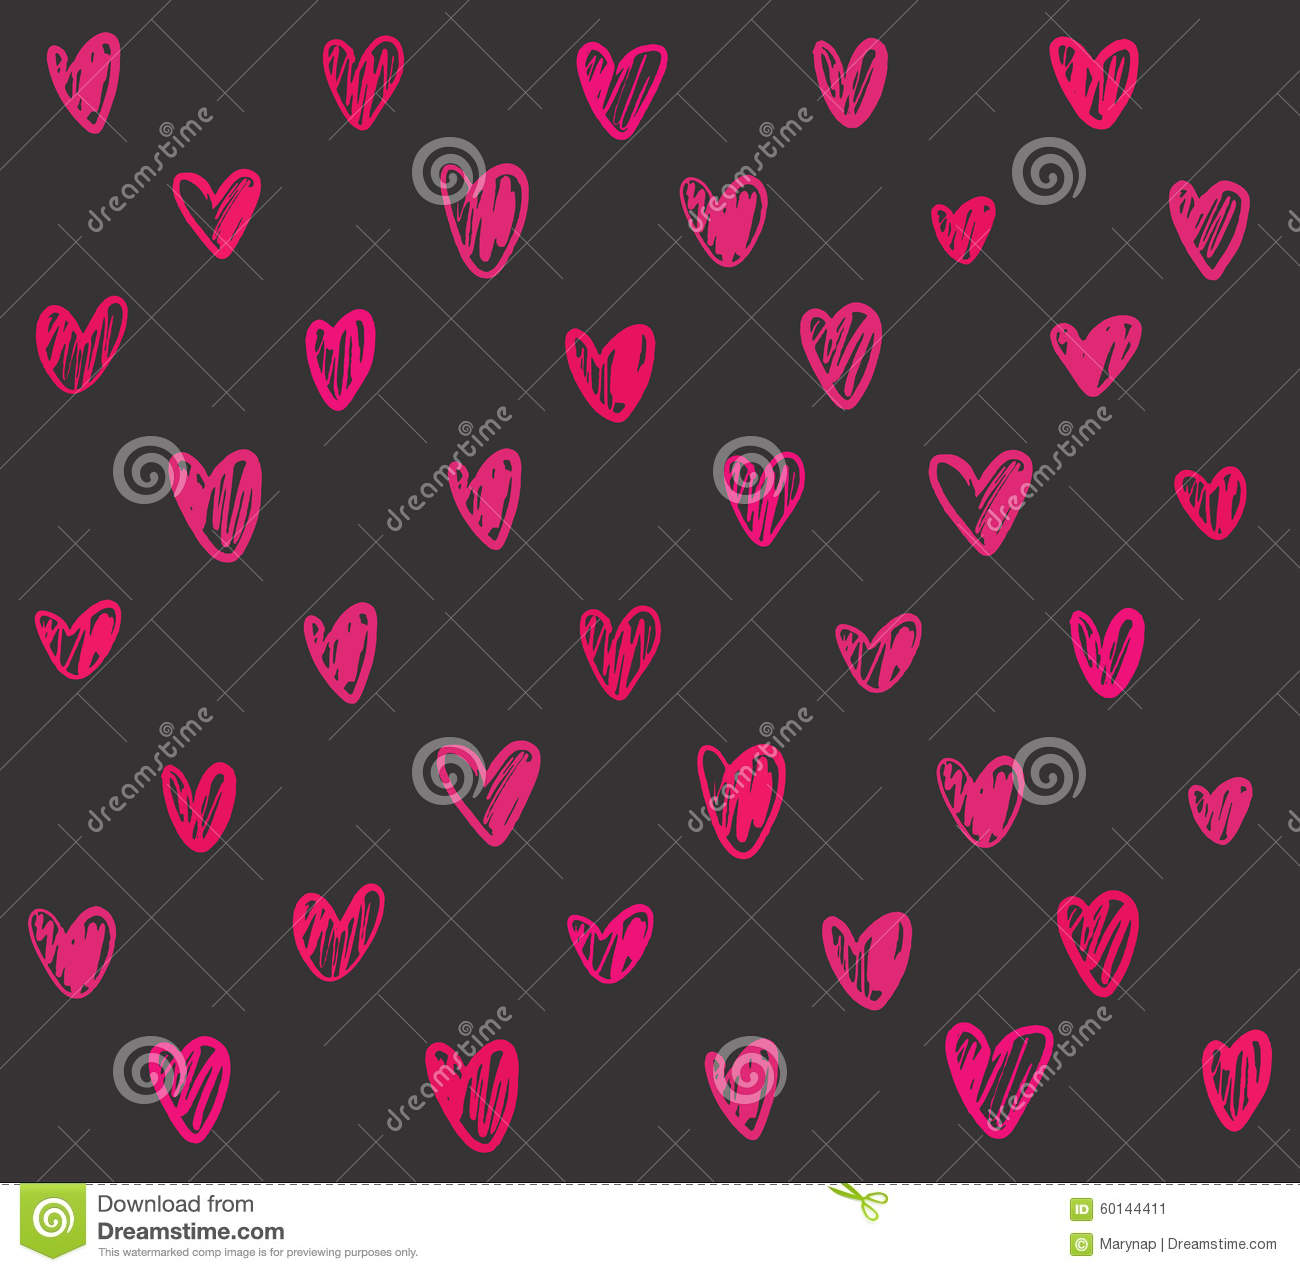 Gray And Pink Hearts: Seamless Pattern With Pink Hand Drawn Hearts On Dark Grey